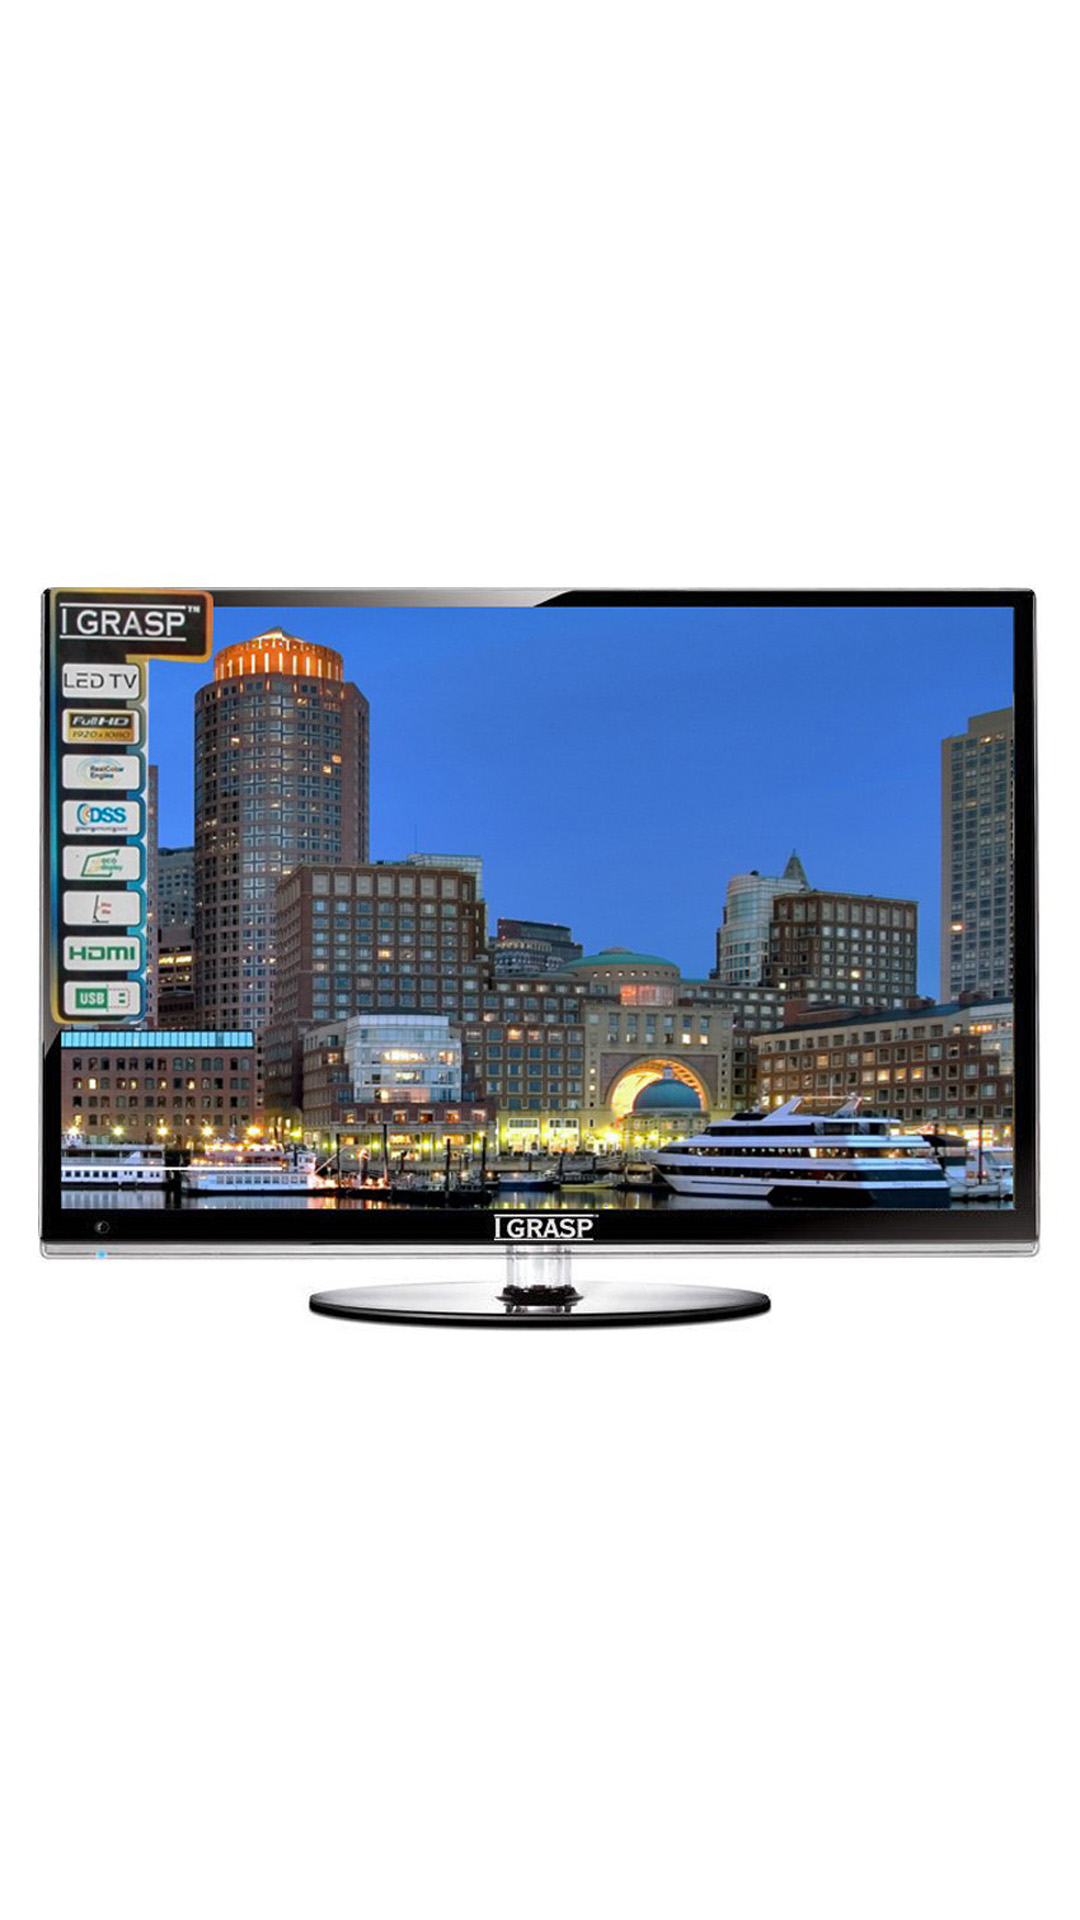 I Grasp 19L11A 48.26 cm (19) LED TV (Full HD)